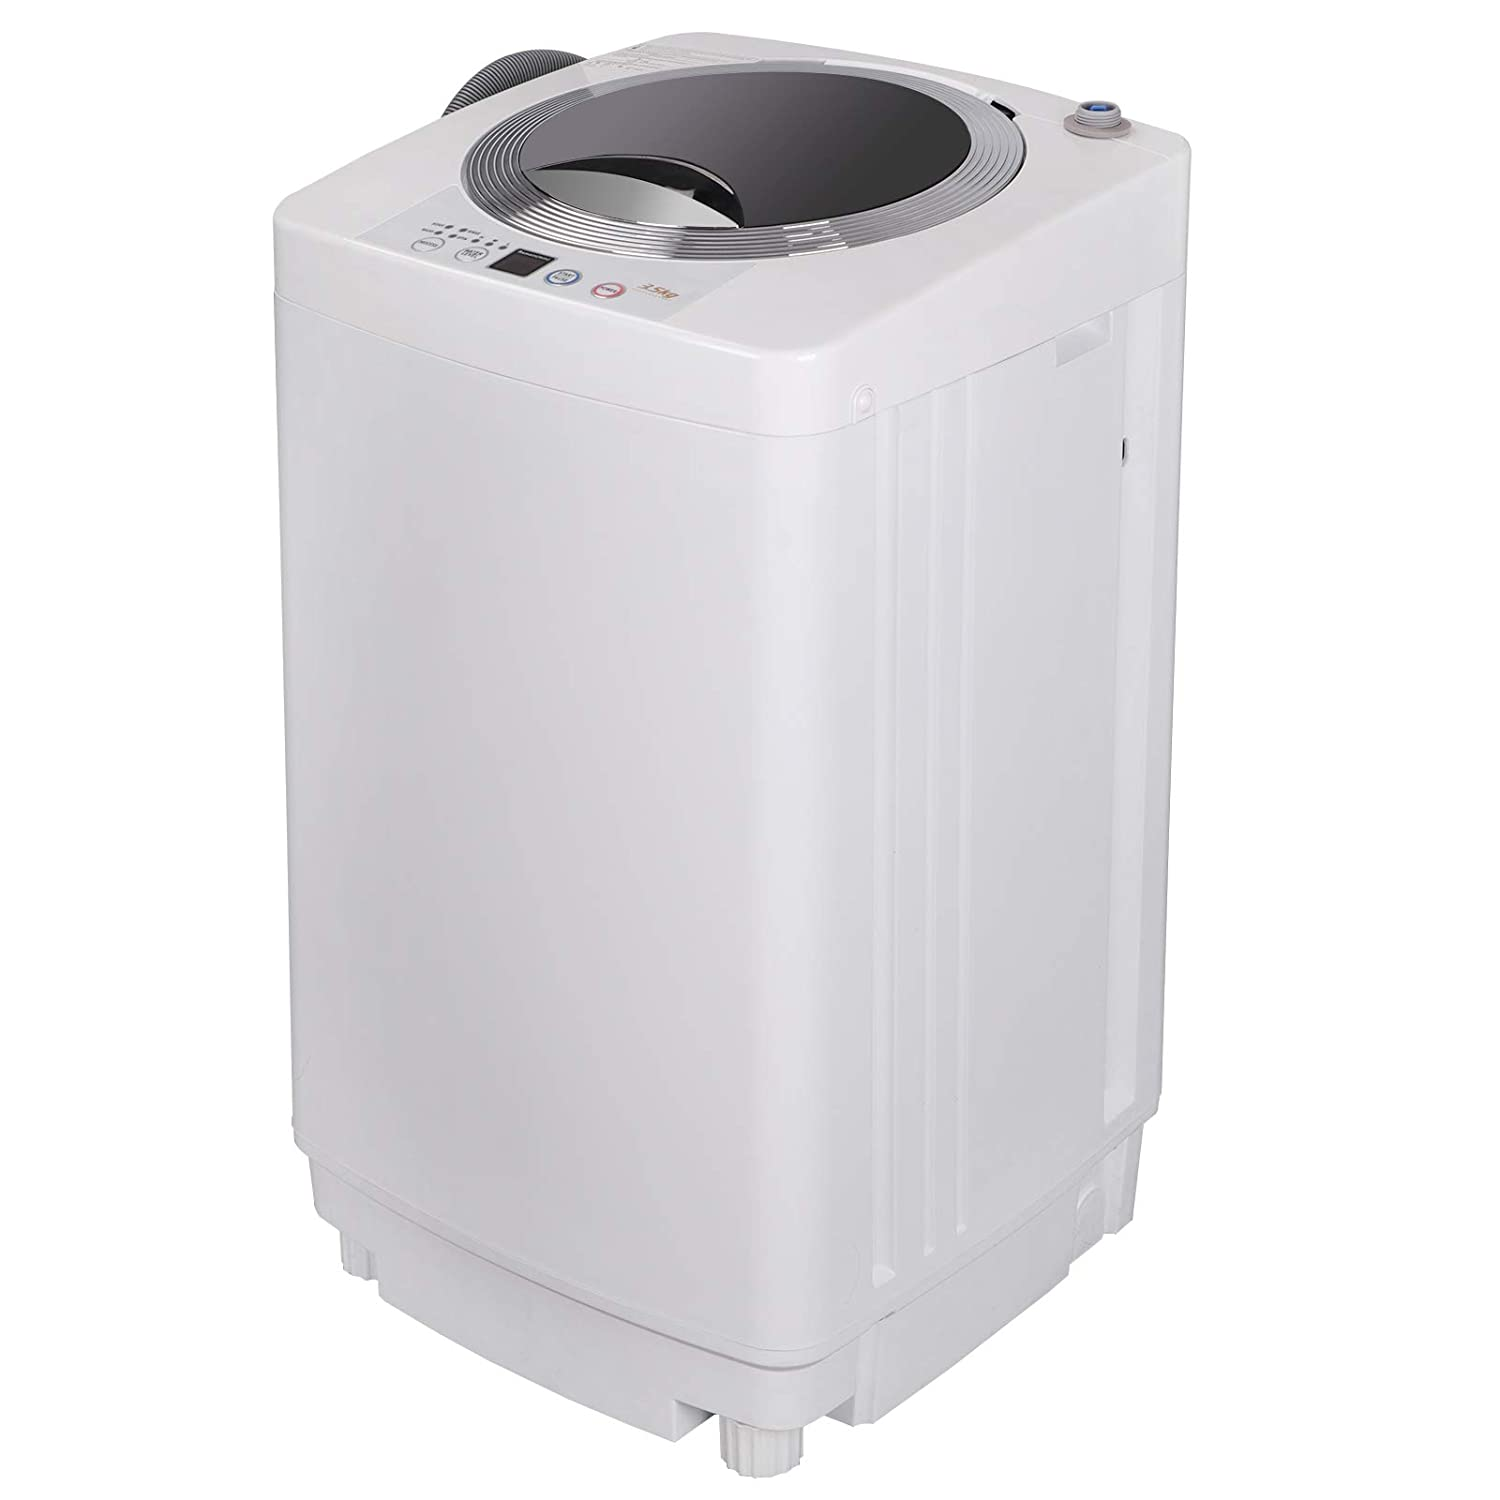 Top 10 Best Portable Washing Machines of 2019 | CampingManiacs